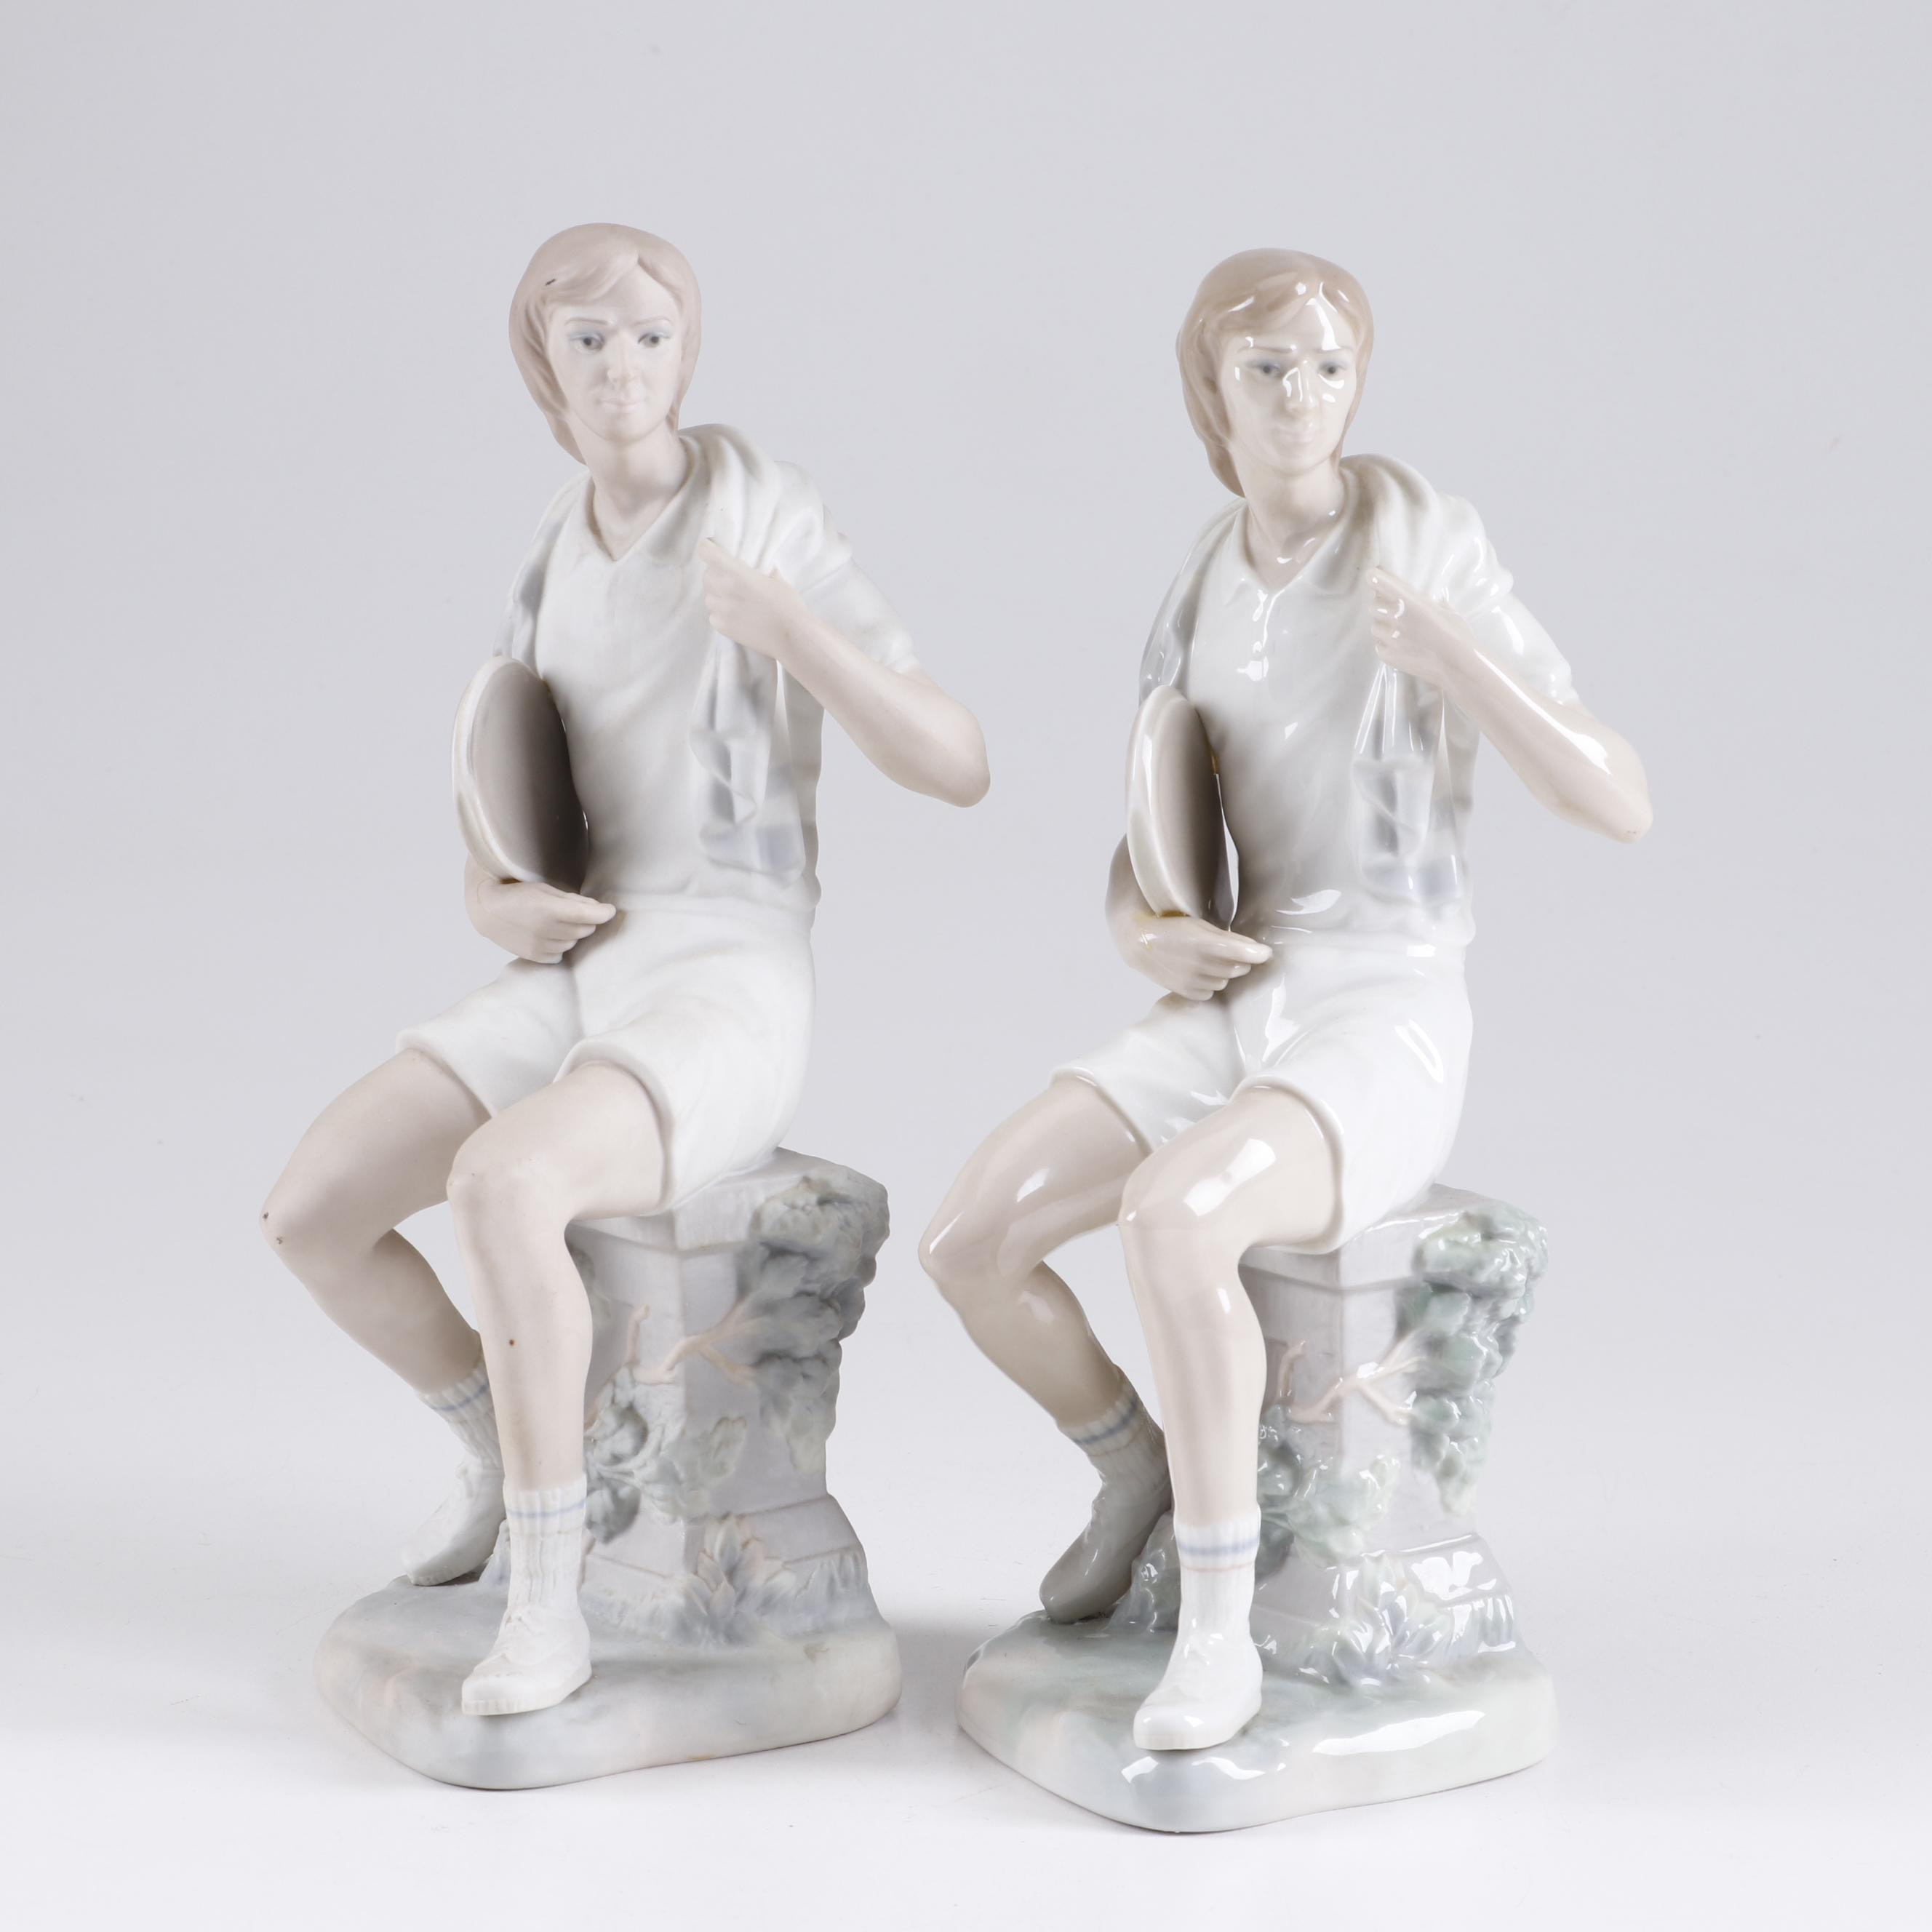 """Lladro Porcelain and Bisque """"Boy Tennis Player"""" Figurines"""